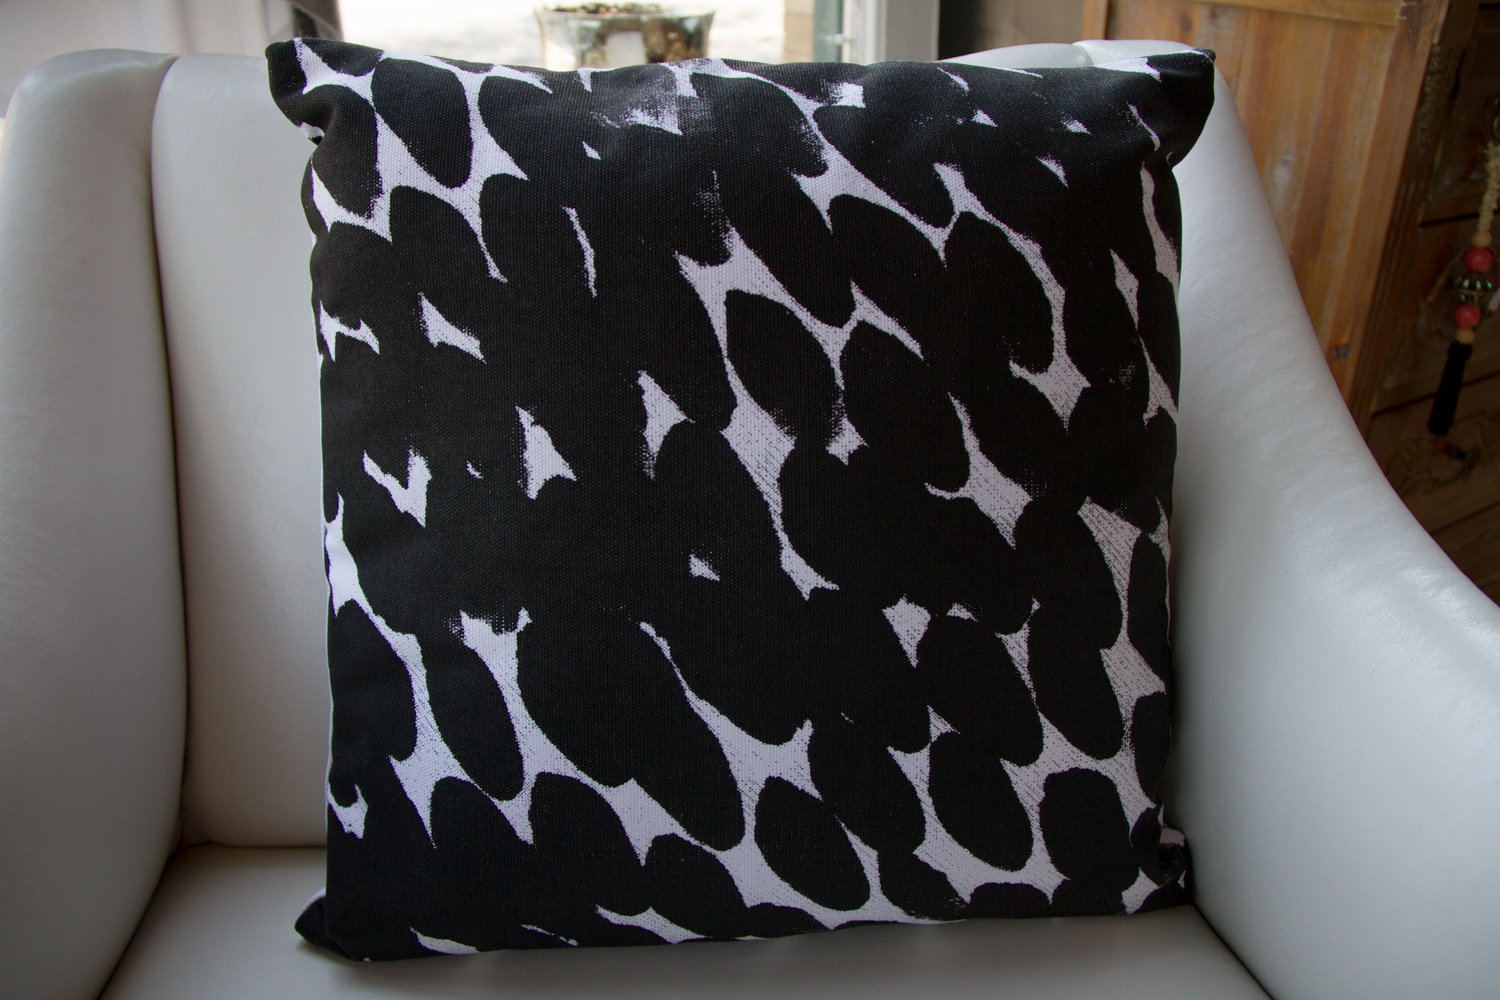 Hand Panted Design Throw Pillow